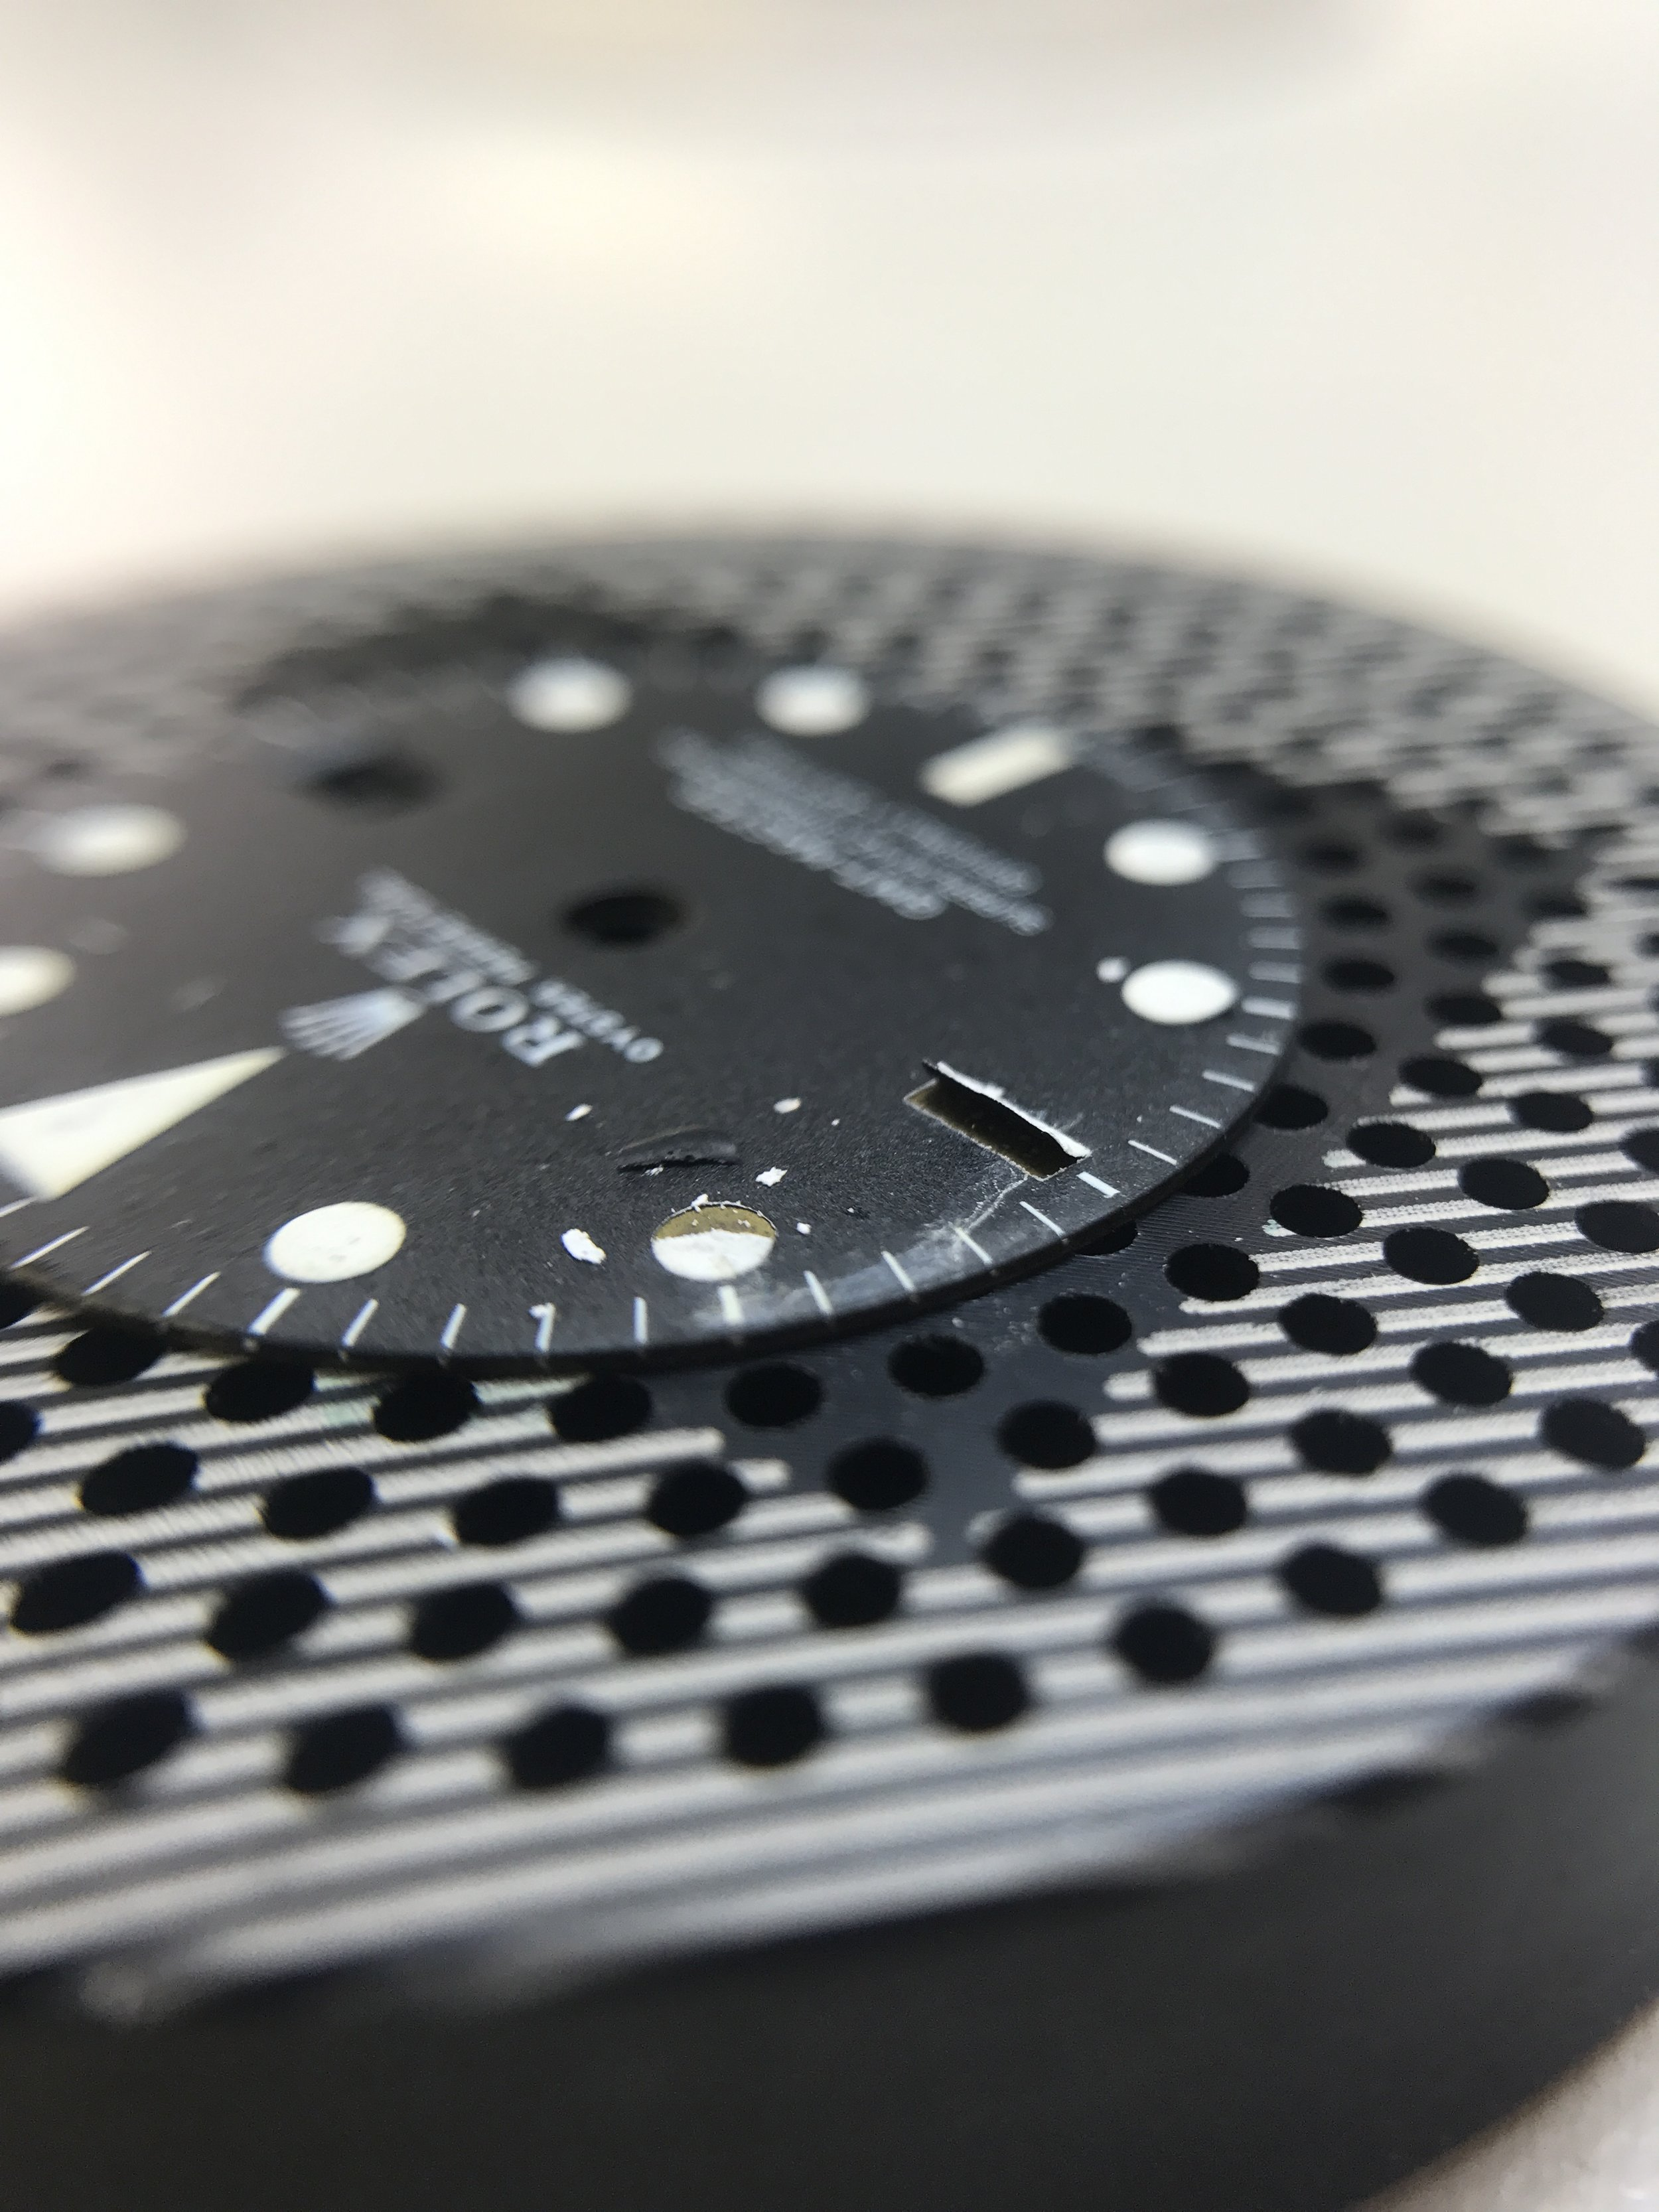 This is an example of a damaged flaking dial. This is definitely a necessary dial change.